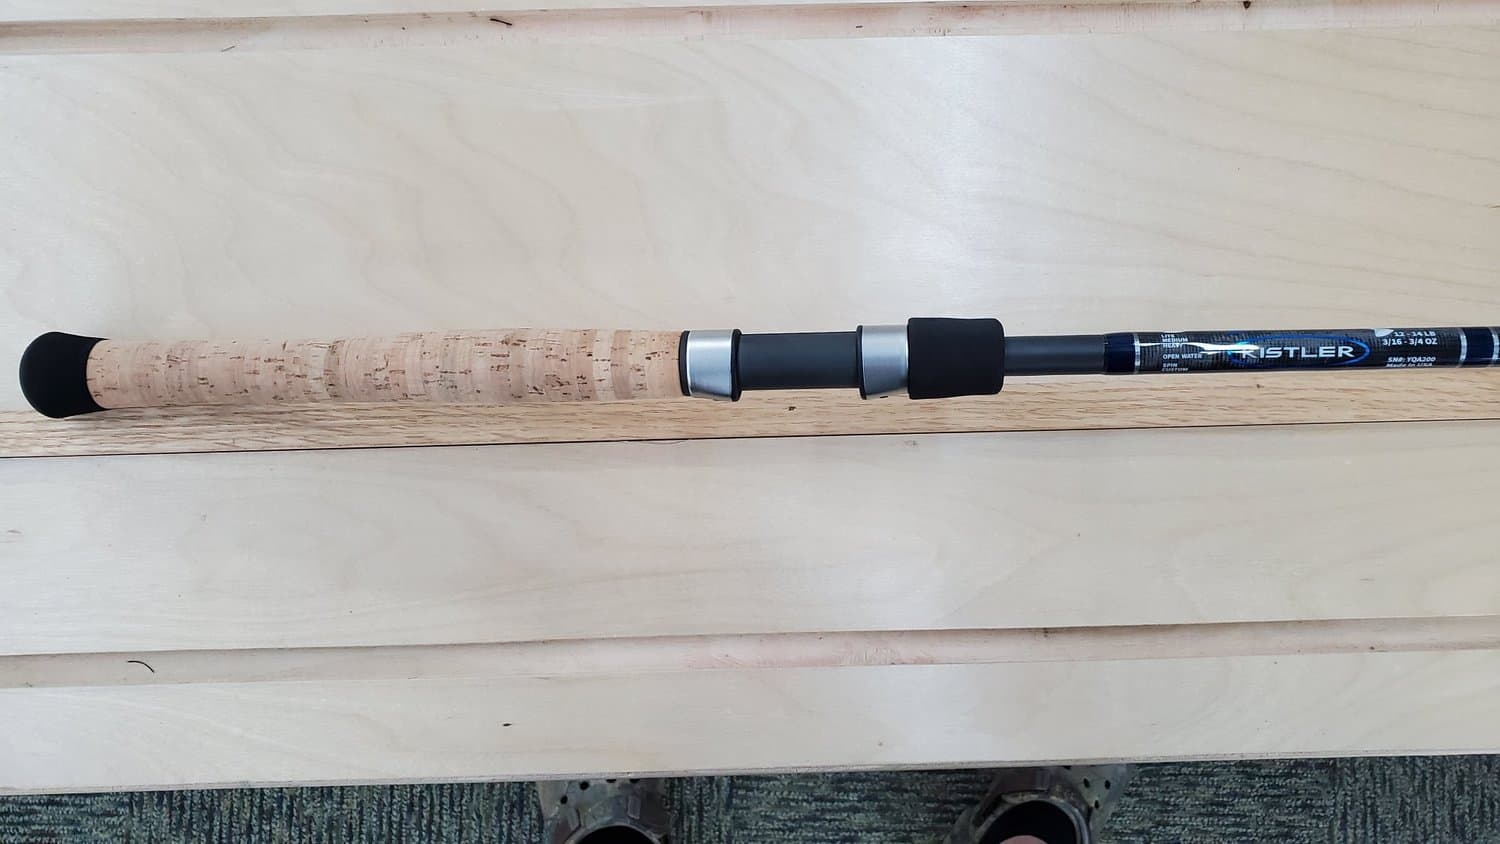 Custom Fishing Poles, Custom Spinning Rods, Build Your Own Fishing Rod, Custom Bass Rods, Custom Fishing Rods, How to make a fishing rod, custom fishing rod builders, personalized fishing rods, how to build a fishing rod